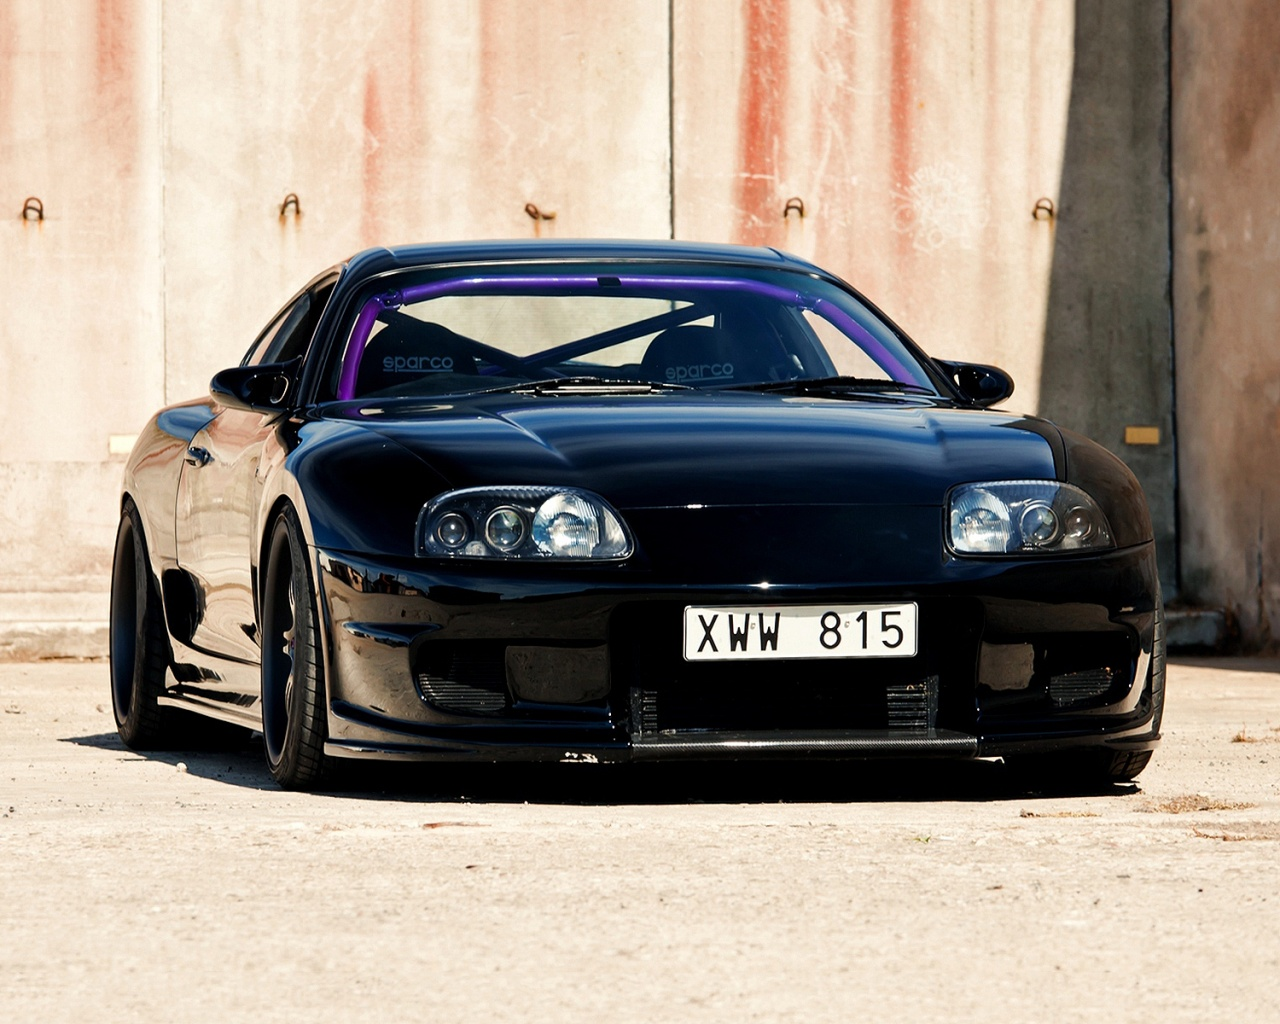 Black jdm supra Wallpaper in 1280x1024 5:4